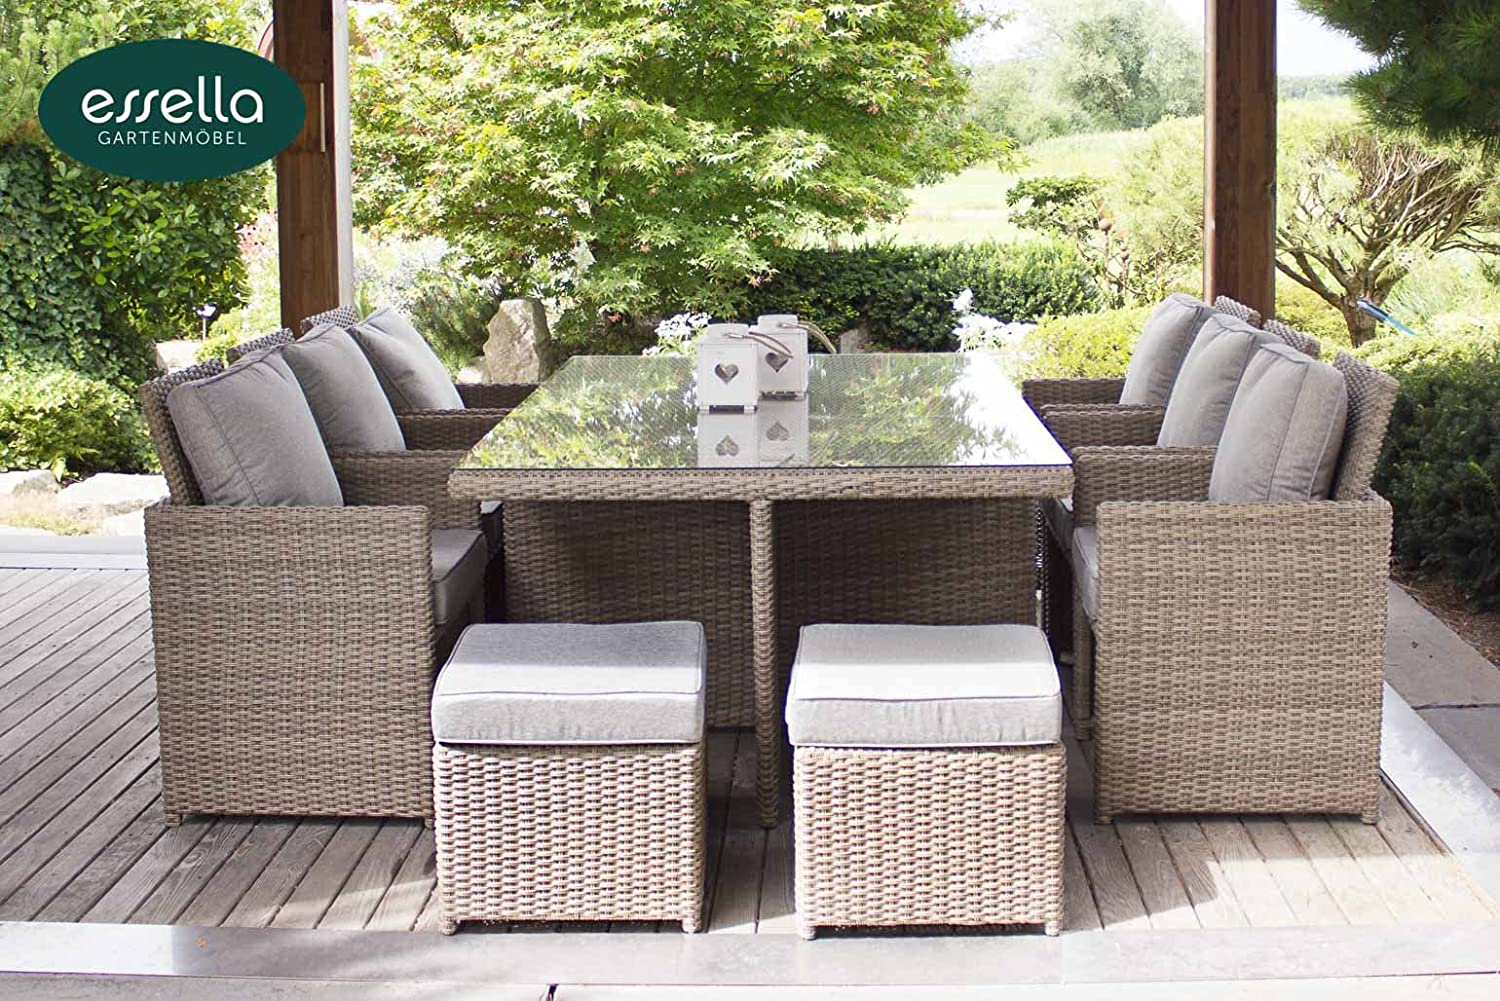 polyrattan sitzgruppe vienna 6 personen rundgeflecht hellbraun gartenm bel terassenm bel. Black Bedroom Furniture Sets. Home Design Ideas